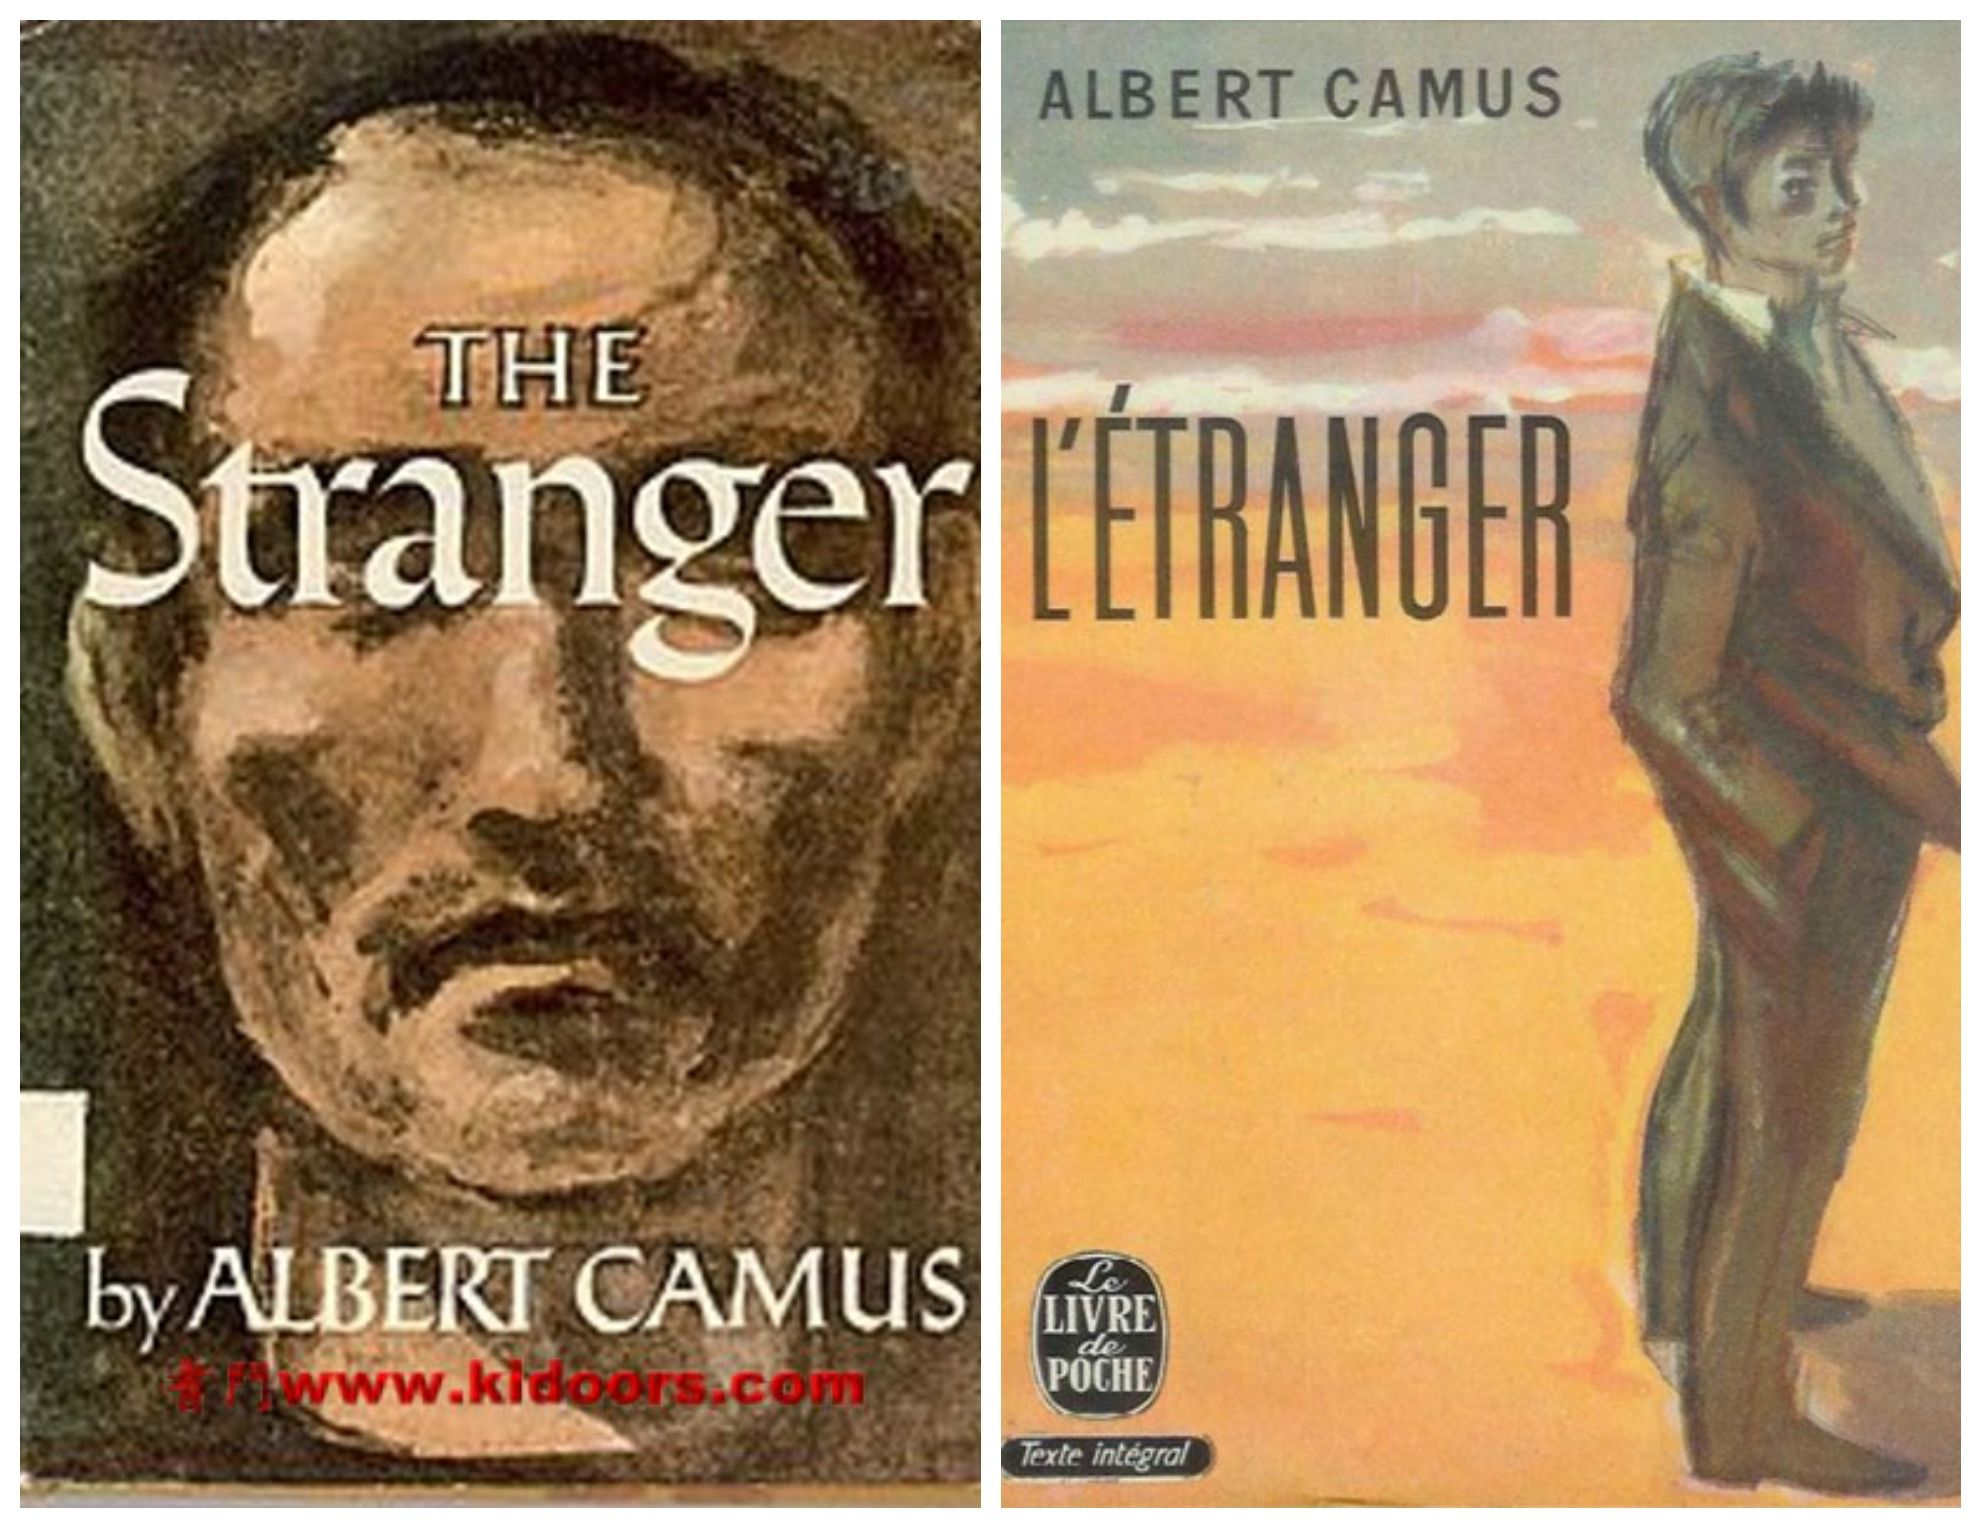 camus essay essay on the stranger best ideas about the stranger  best ideas about the stranger albert camus from l eacutetranger the stranger by albert camus at